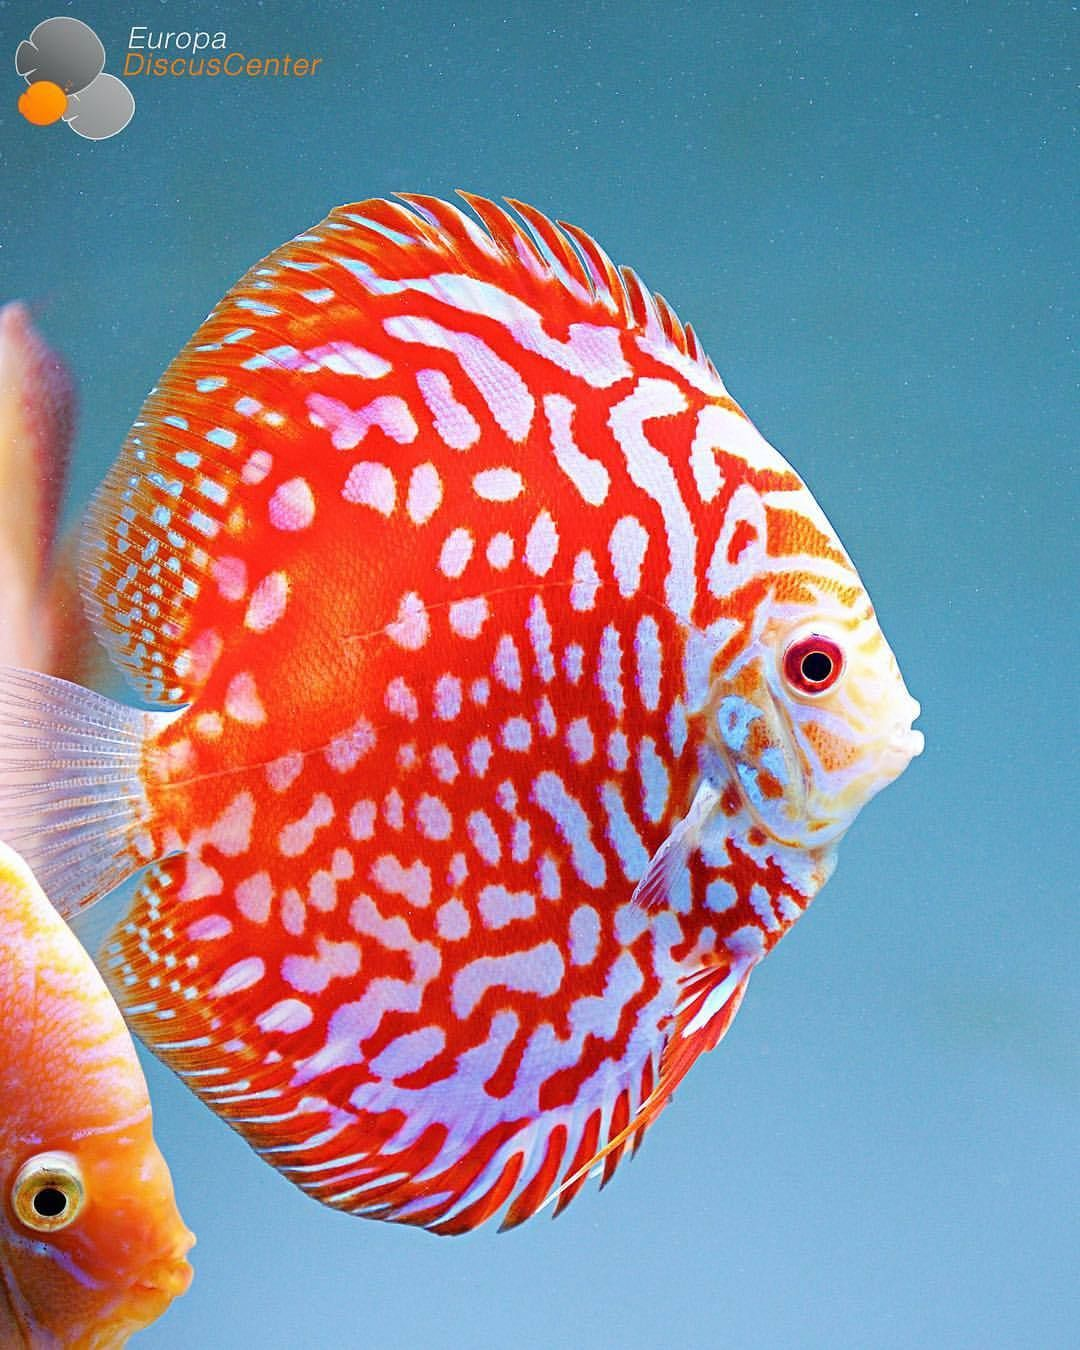 Checkerboard Red Map Discus ❤ ⠀ #discus #diskus #diskusfische ...